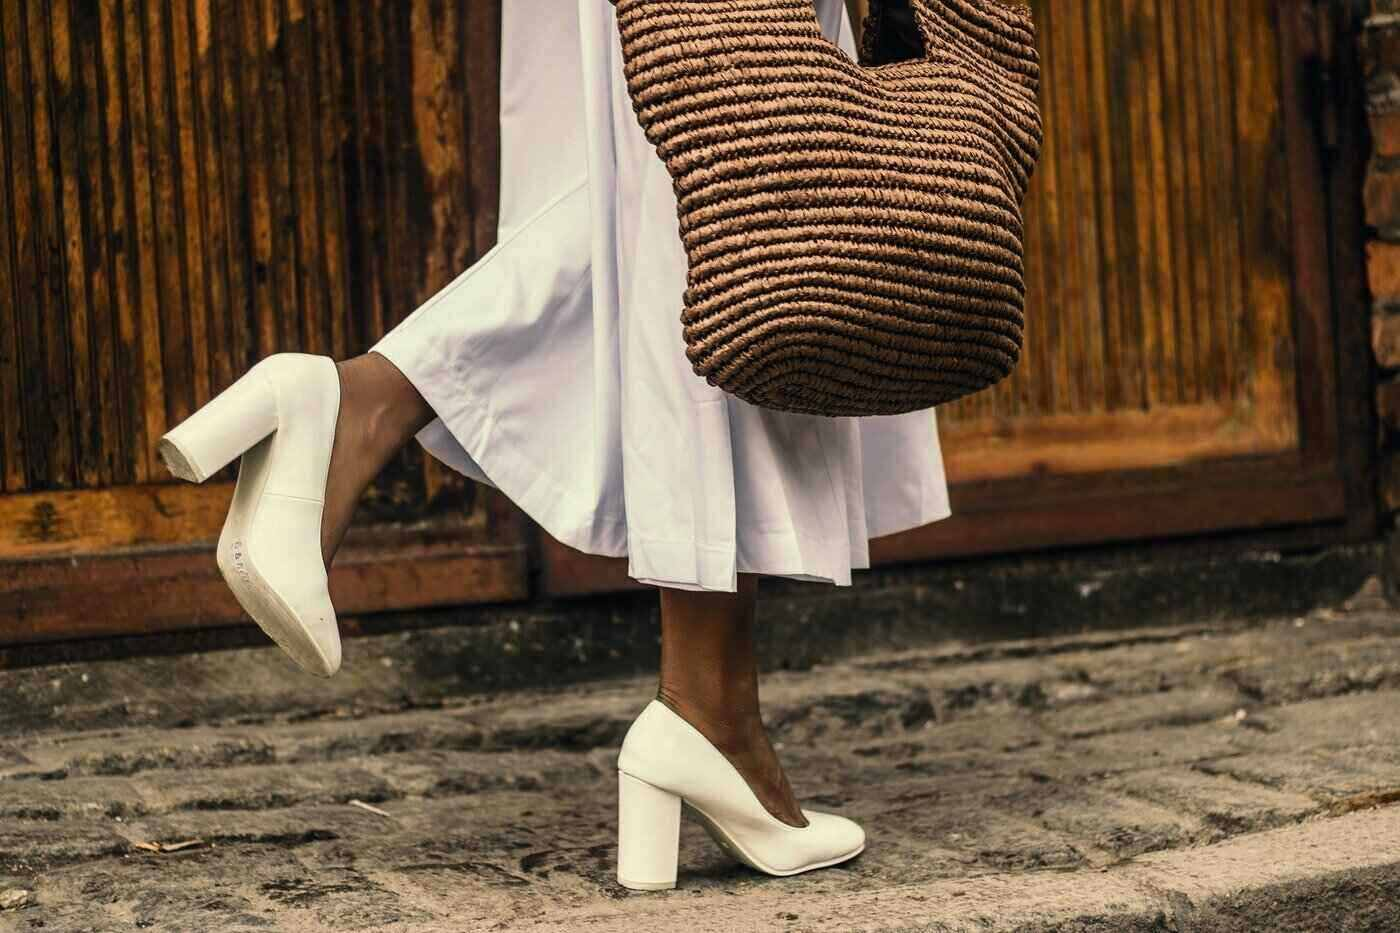 close up of woman's legs walking with high heels and bag - hemp and high fashion